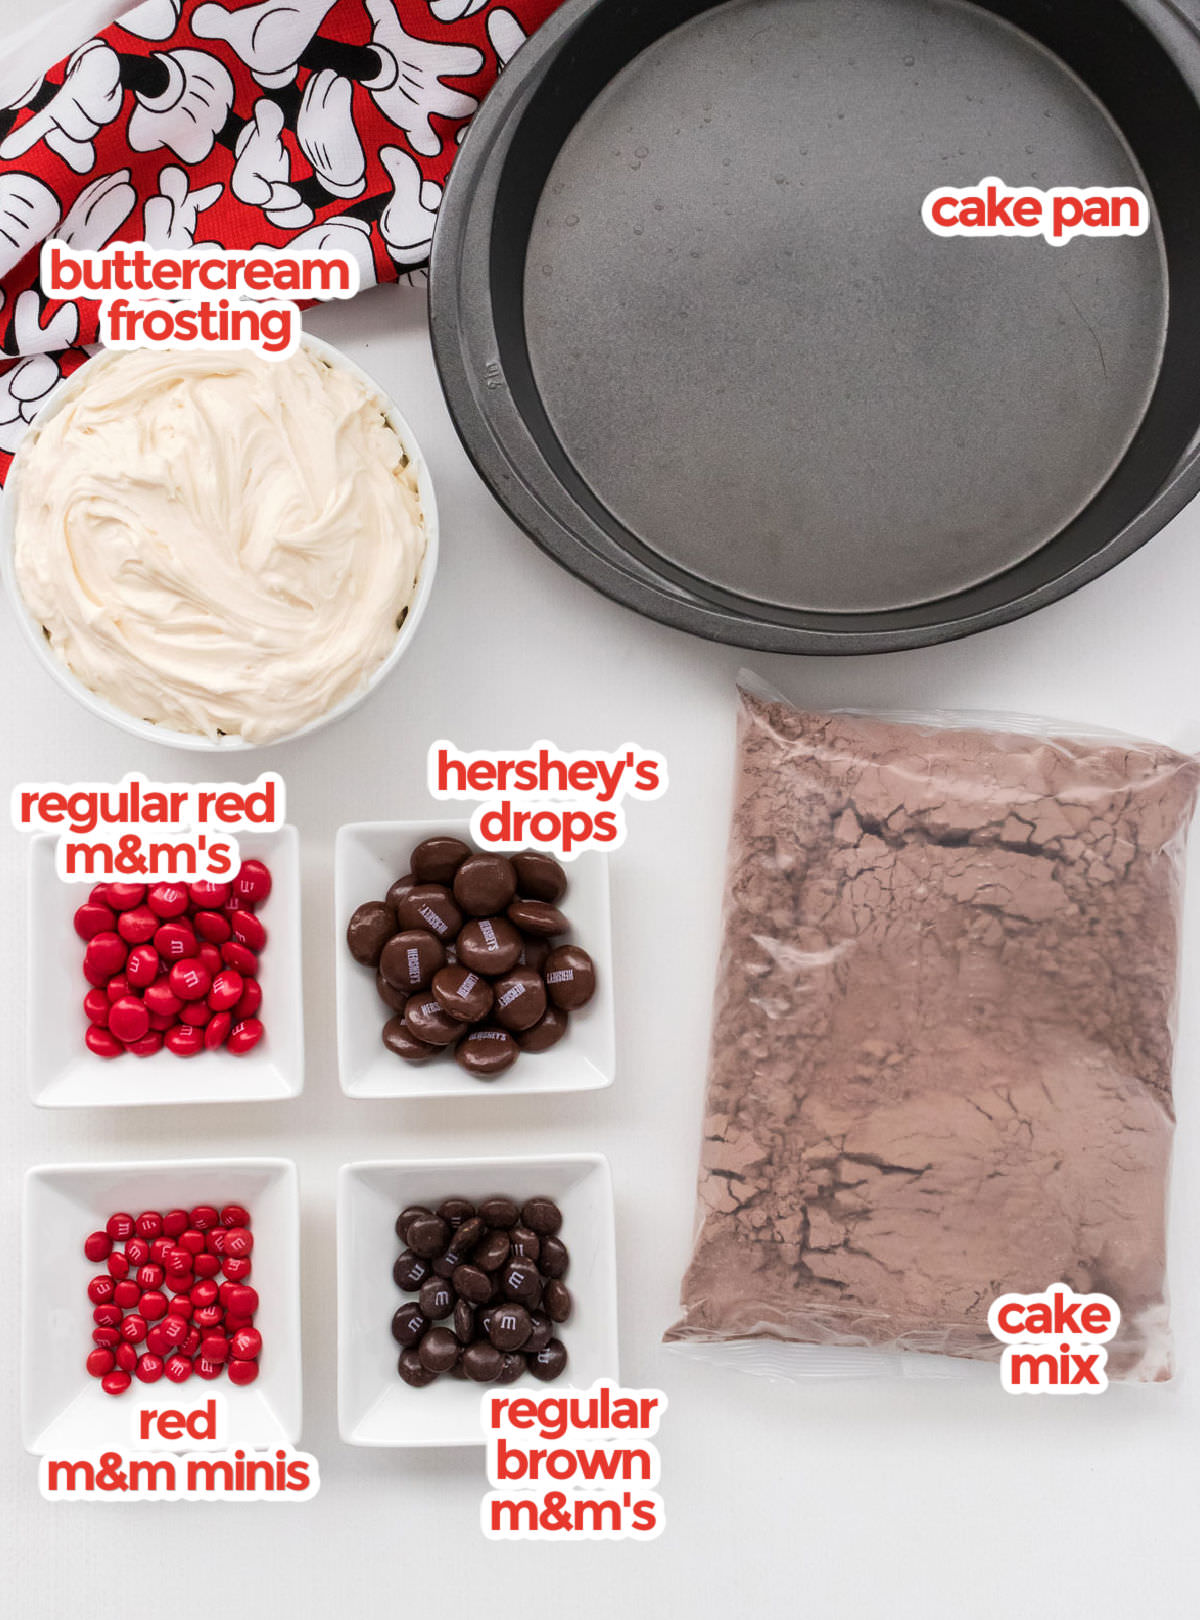 All the ingredients you will need to make an Easy Mickey Mouse Cake including cake mix, cake pans, buttercream frosting, Hershey's Chocolate Drops, Regular M&M's and M&M Minis.